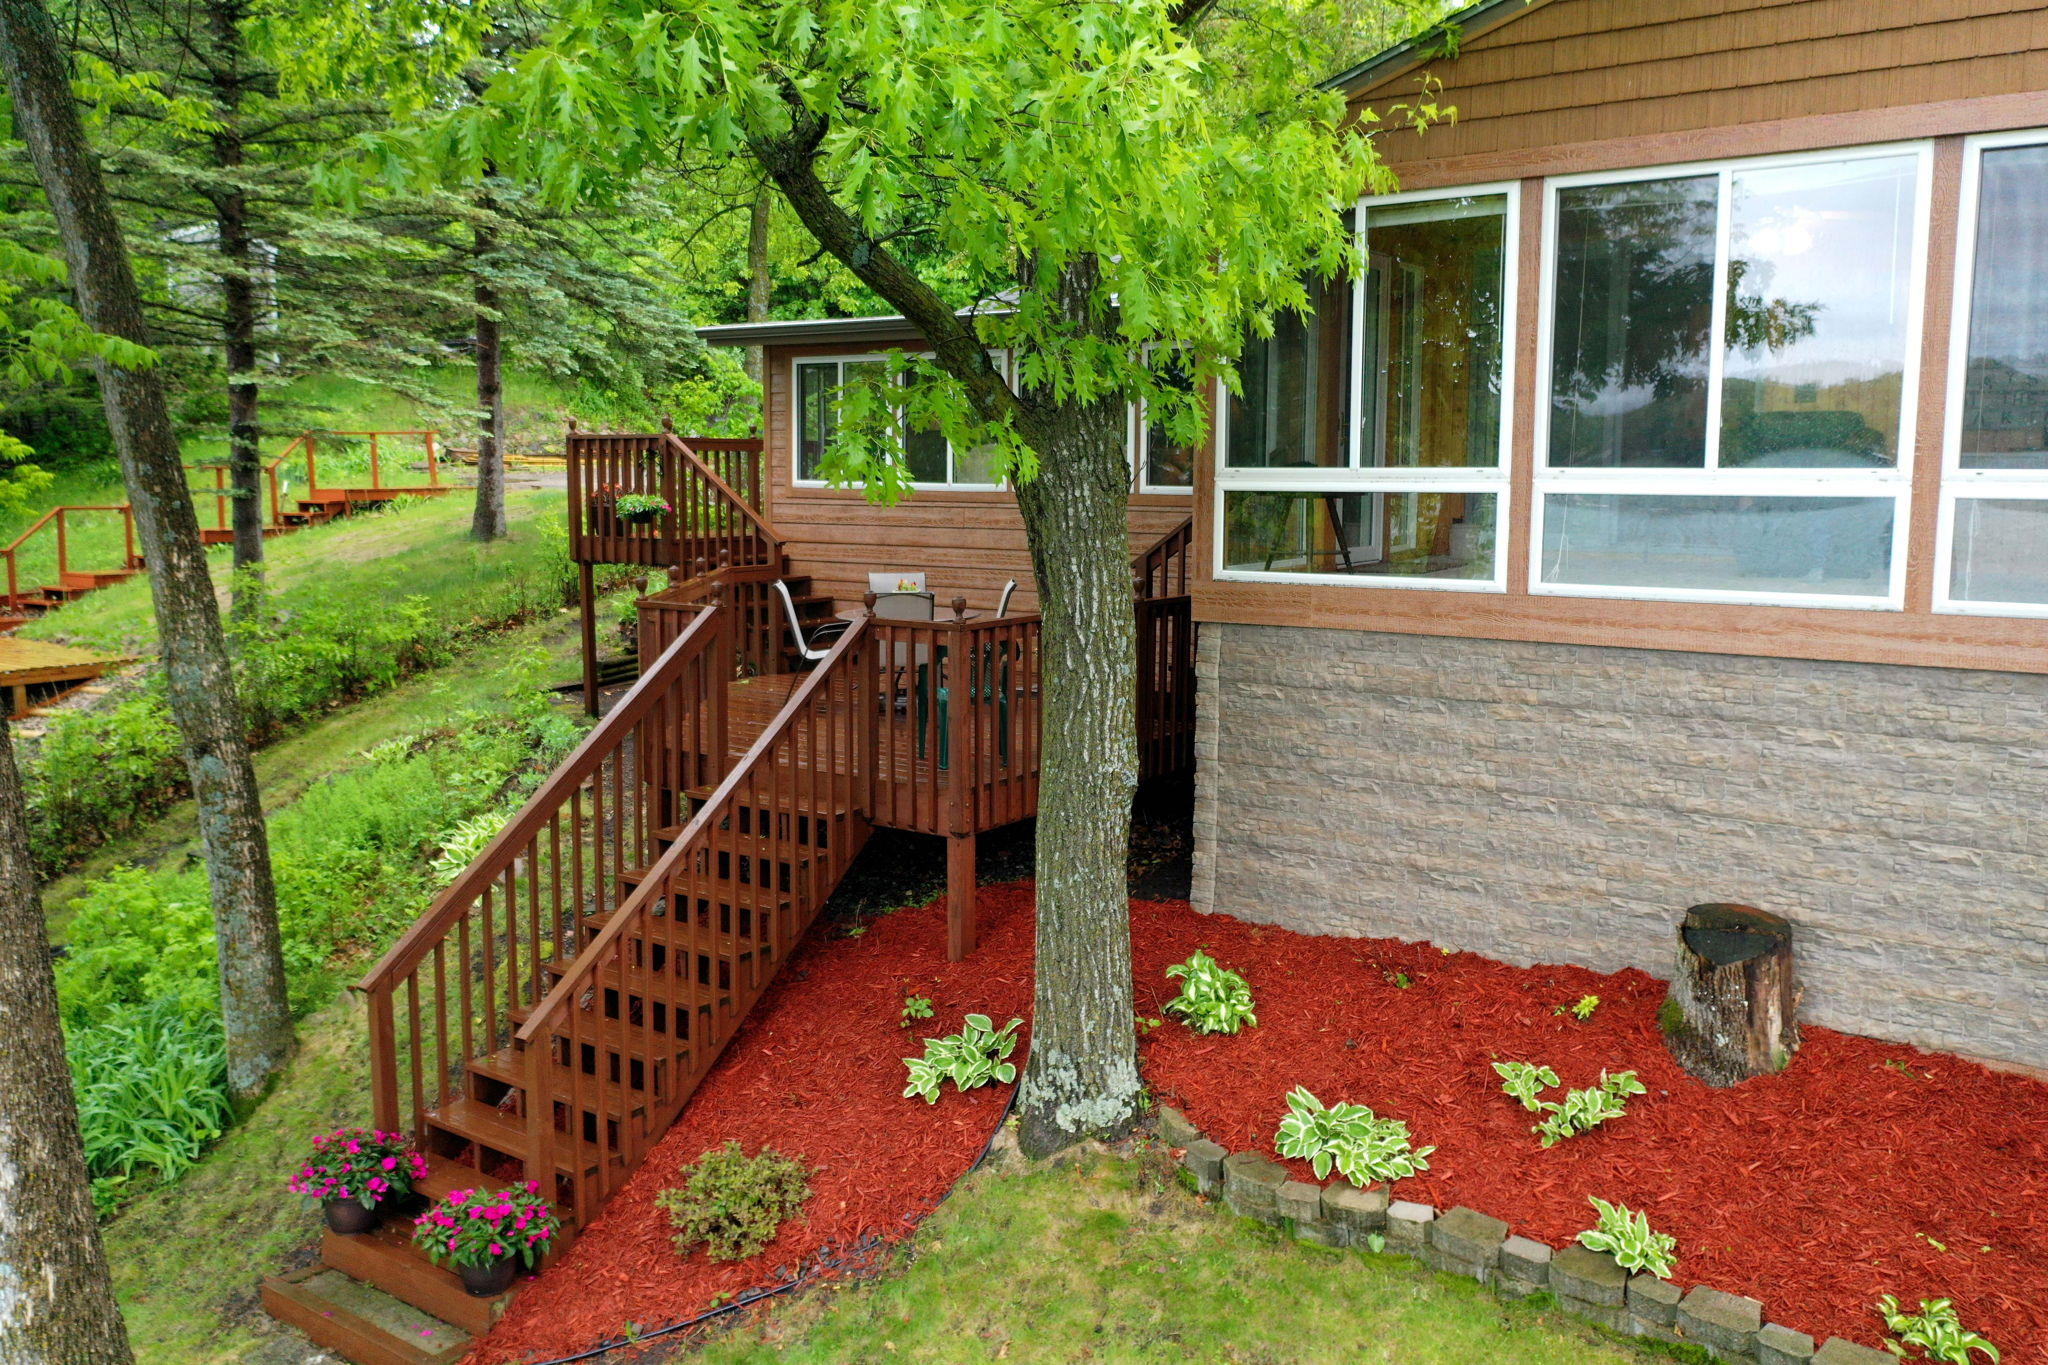 30522 Brentwood Rd, Paynesville, MN 56362, US